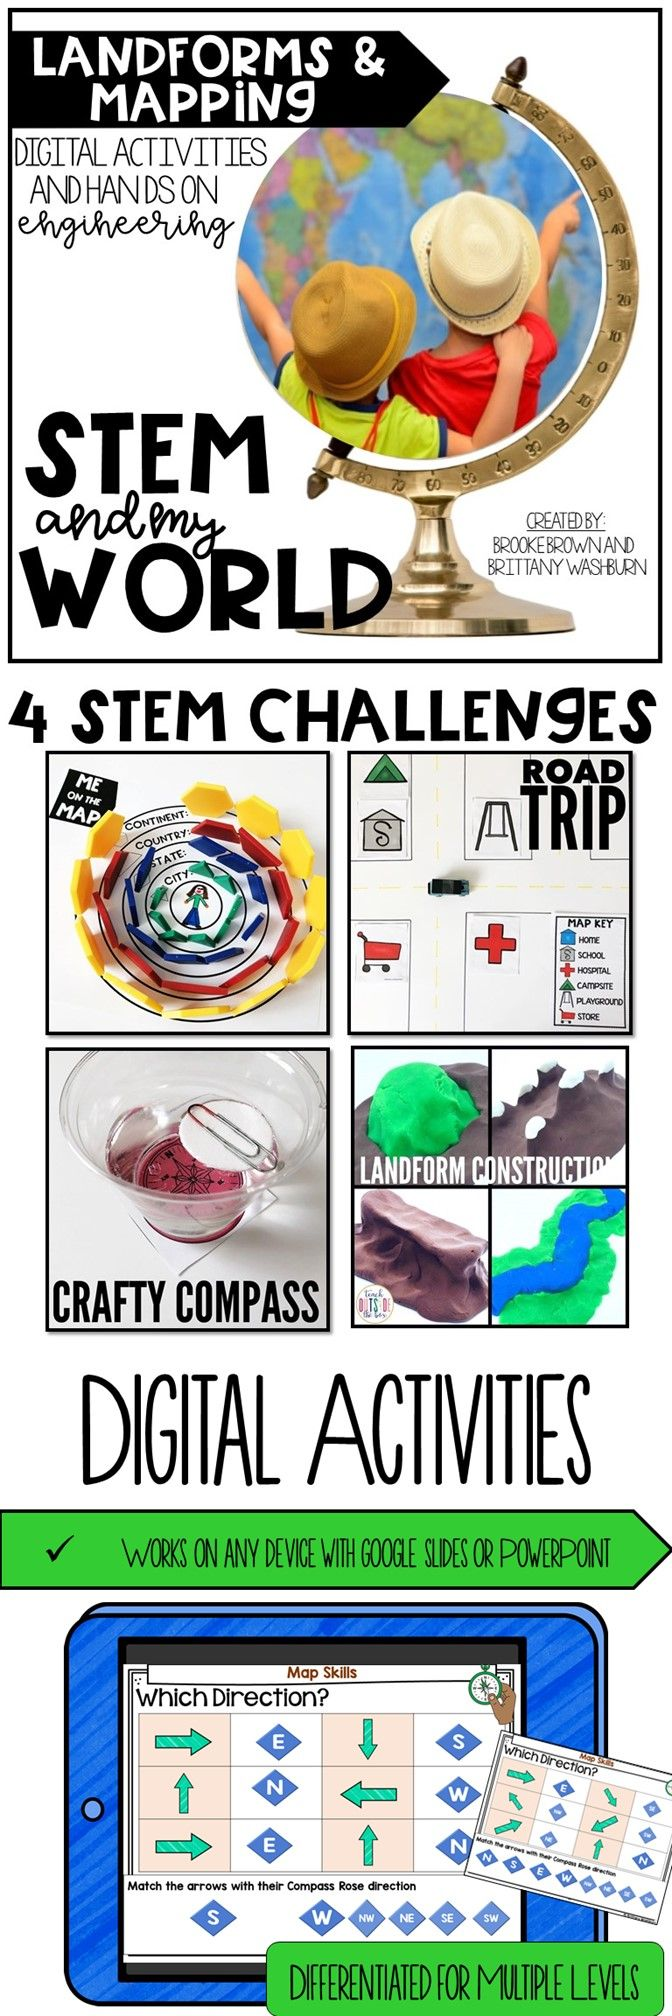 STEM Challenges and digital activities for Kindergarten, First Grade, and Second Grade to learn about map skills, cardinal directions, and landforms!